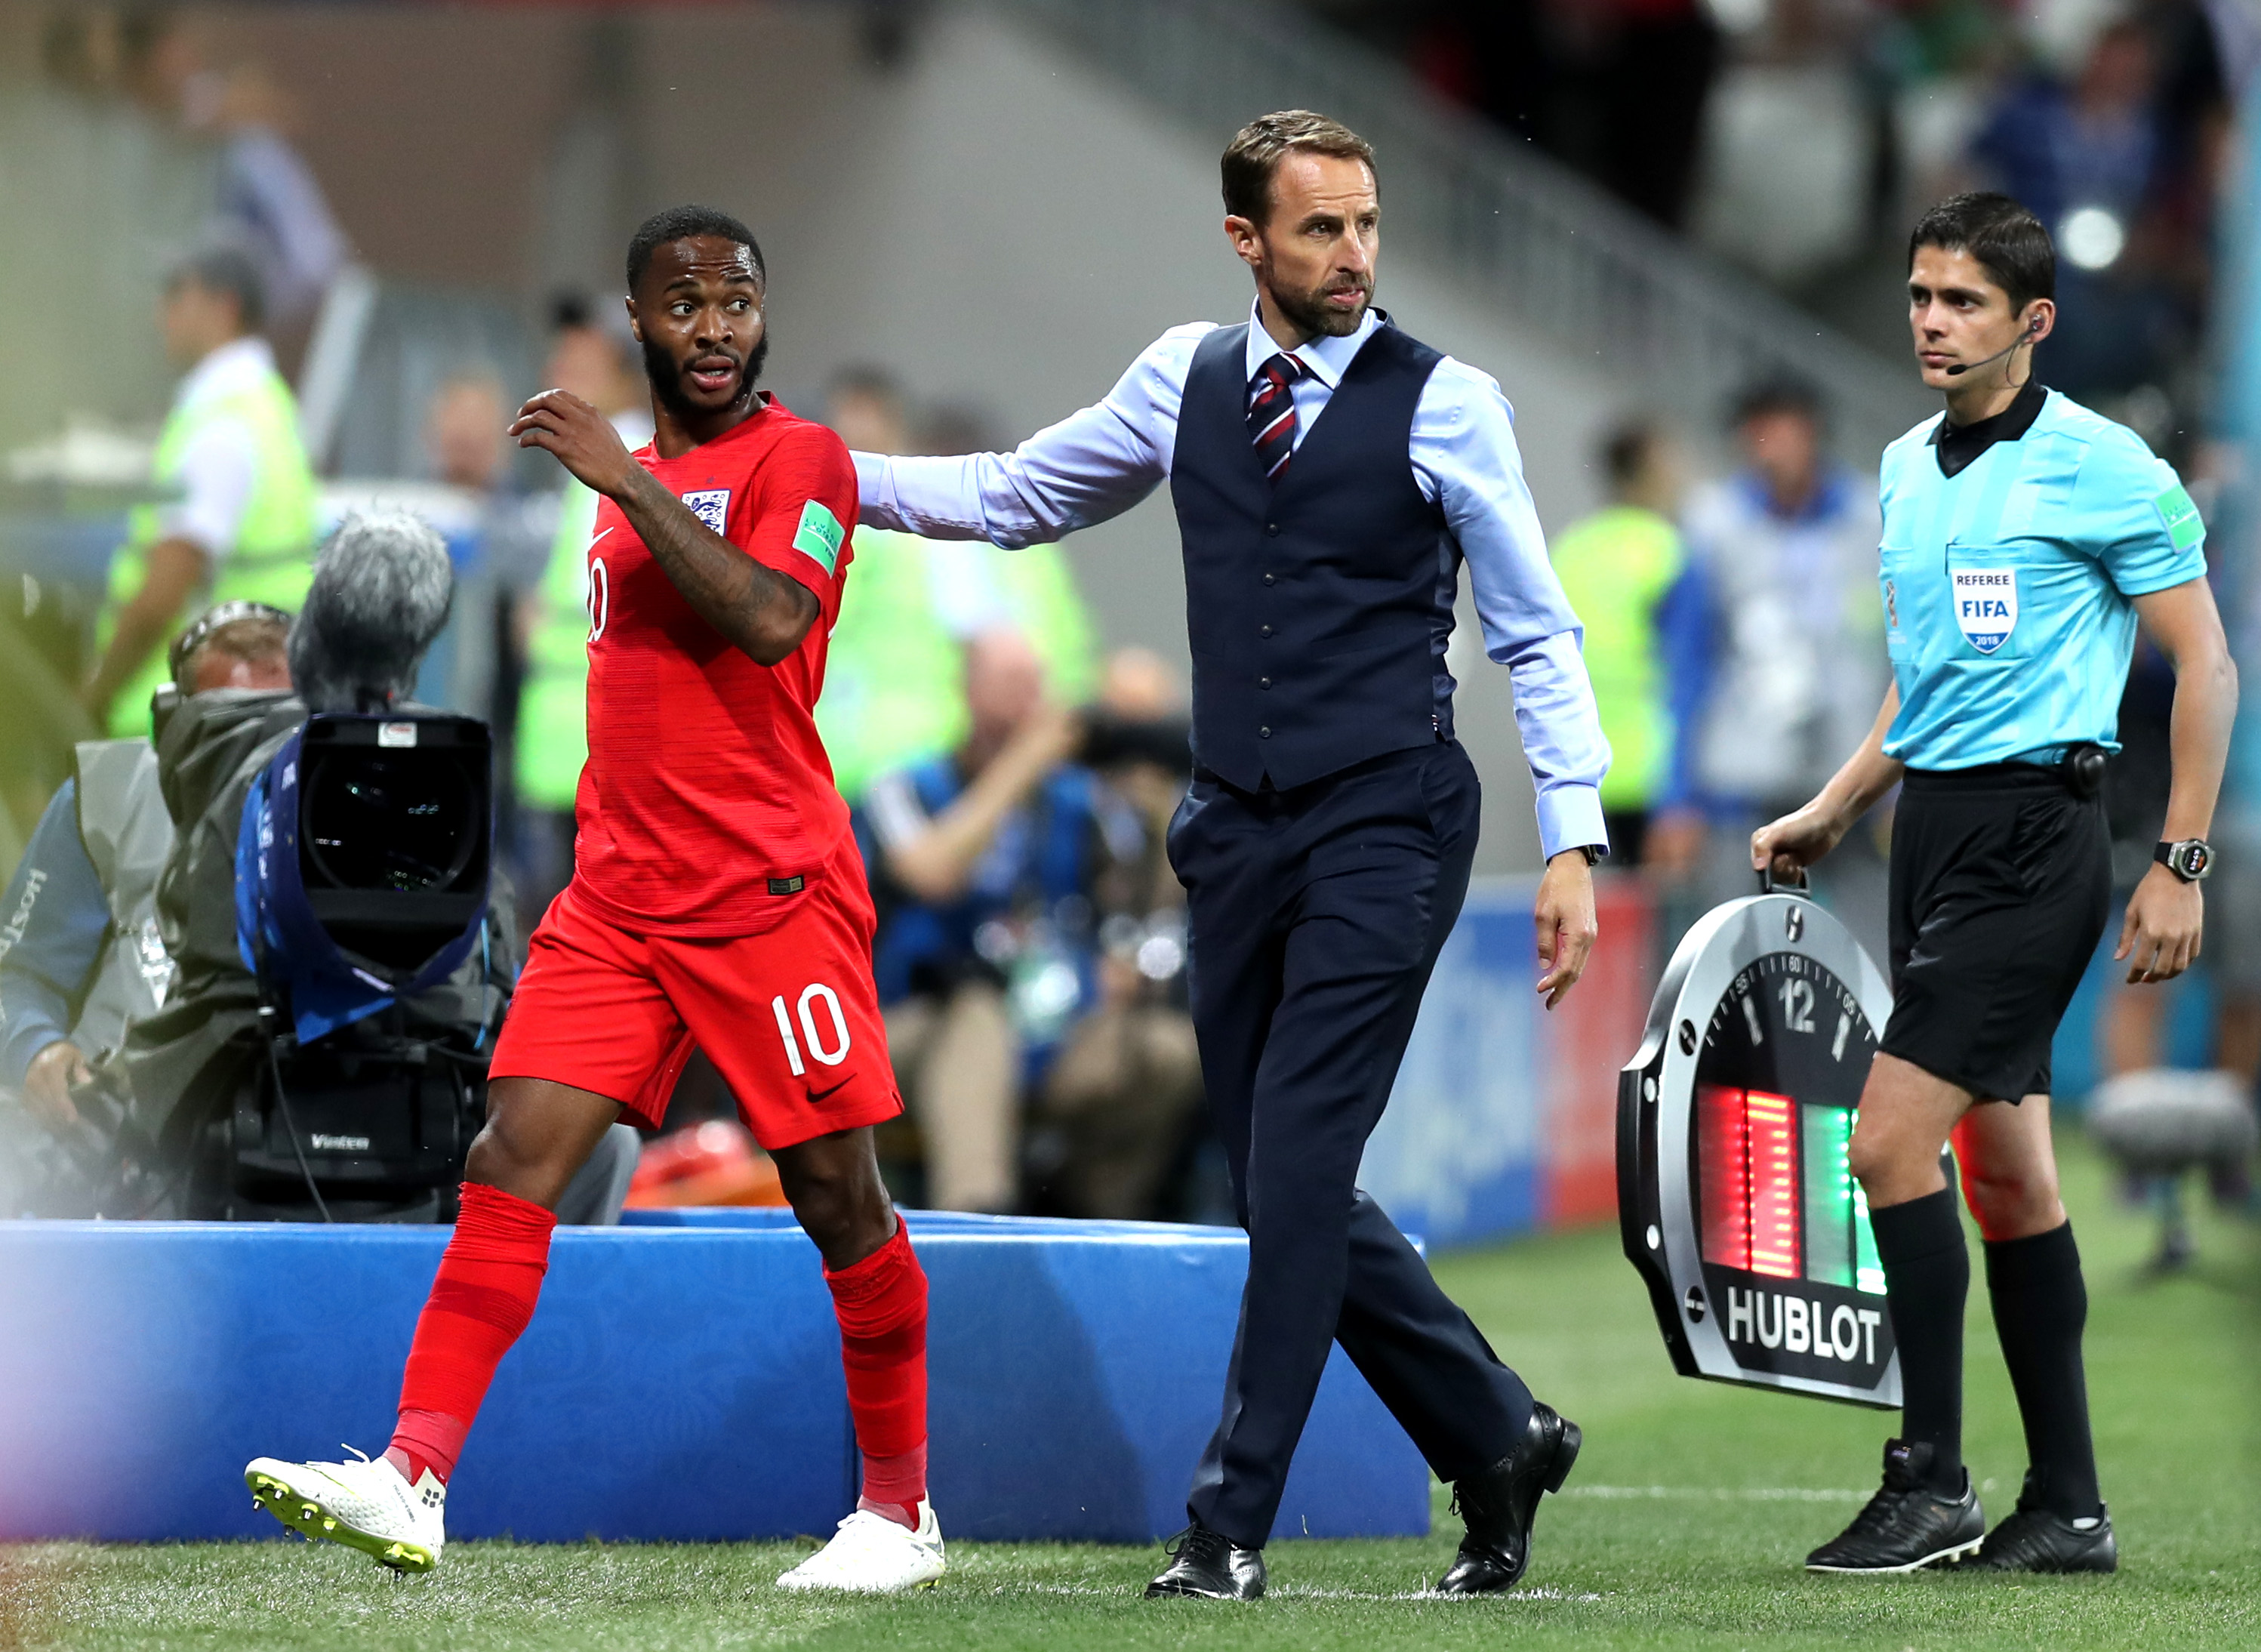 England v Panama: Five things to look out for in Russian Federation